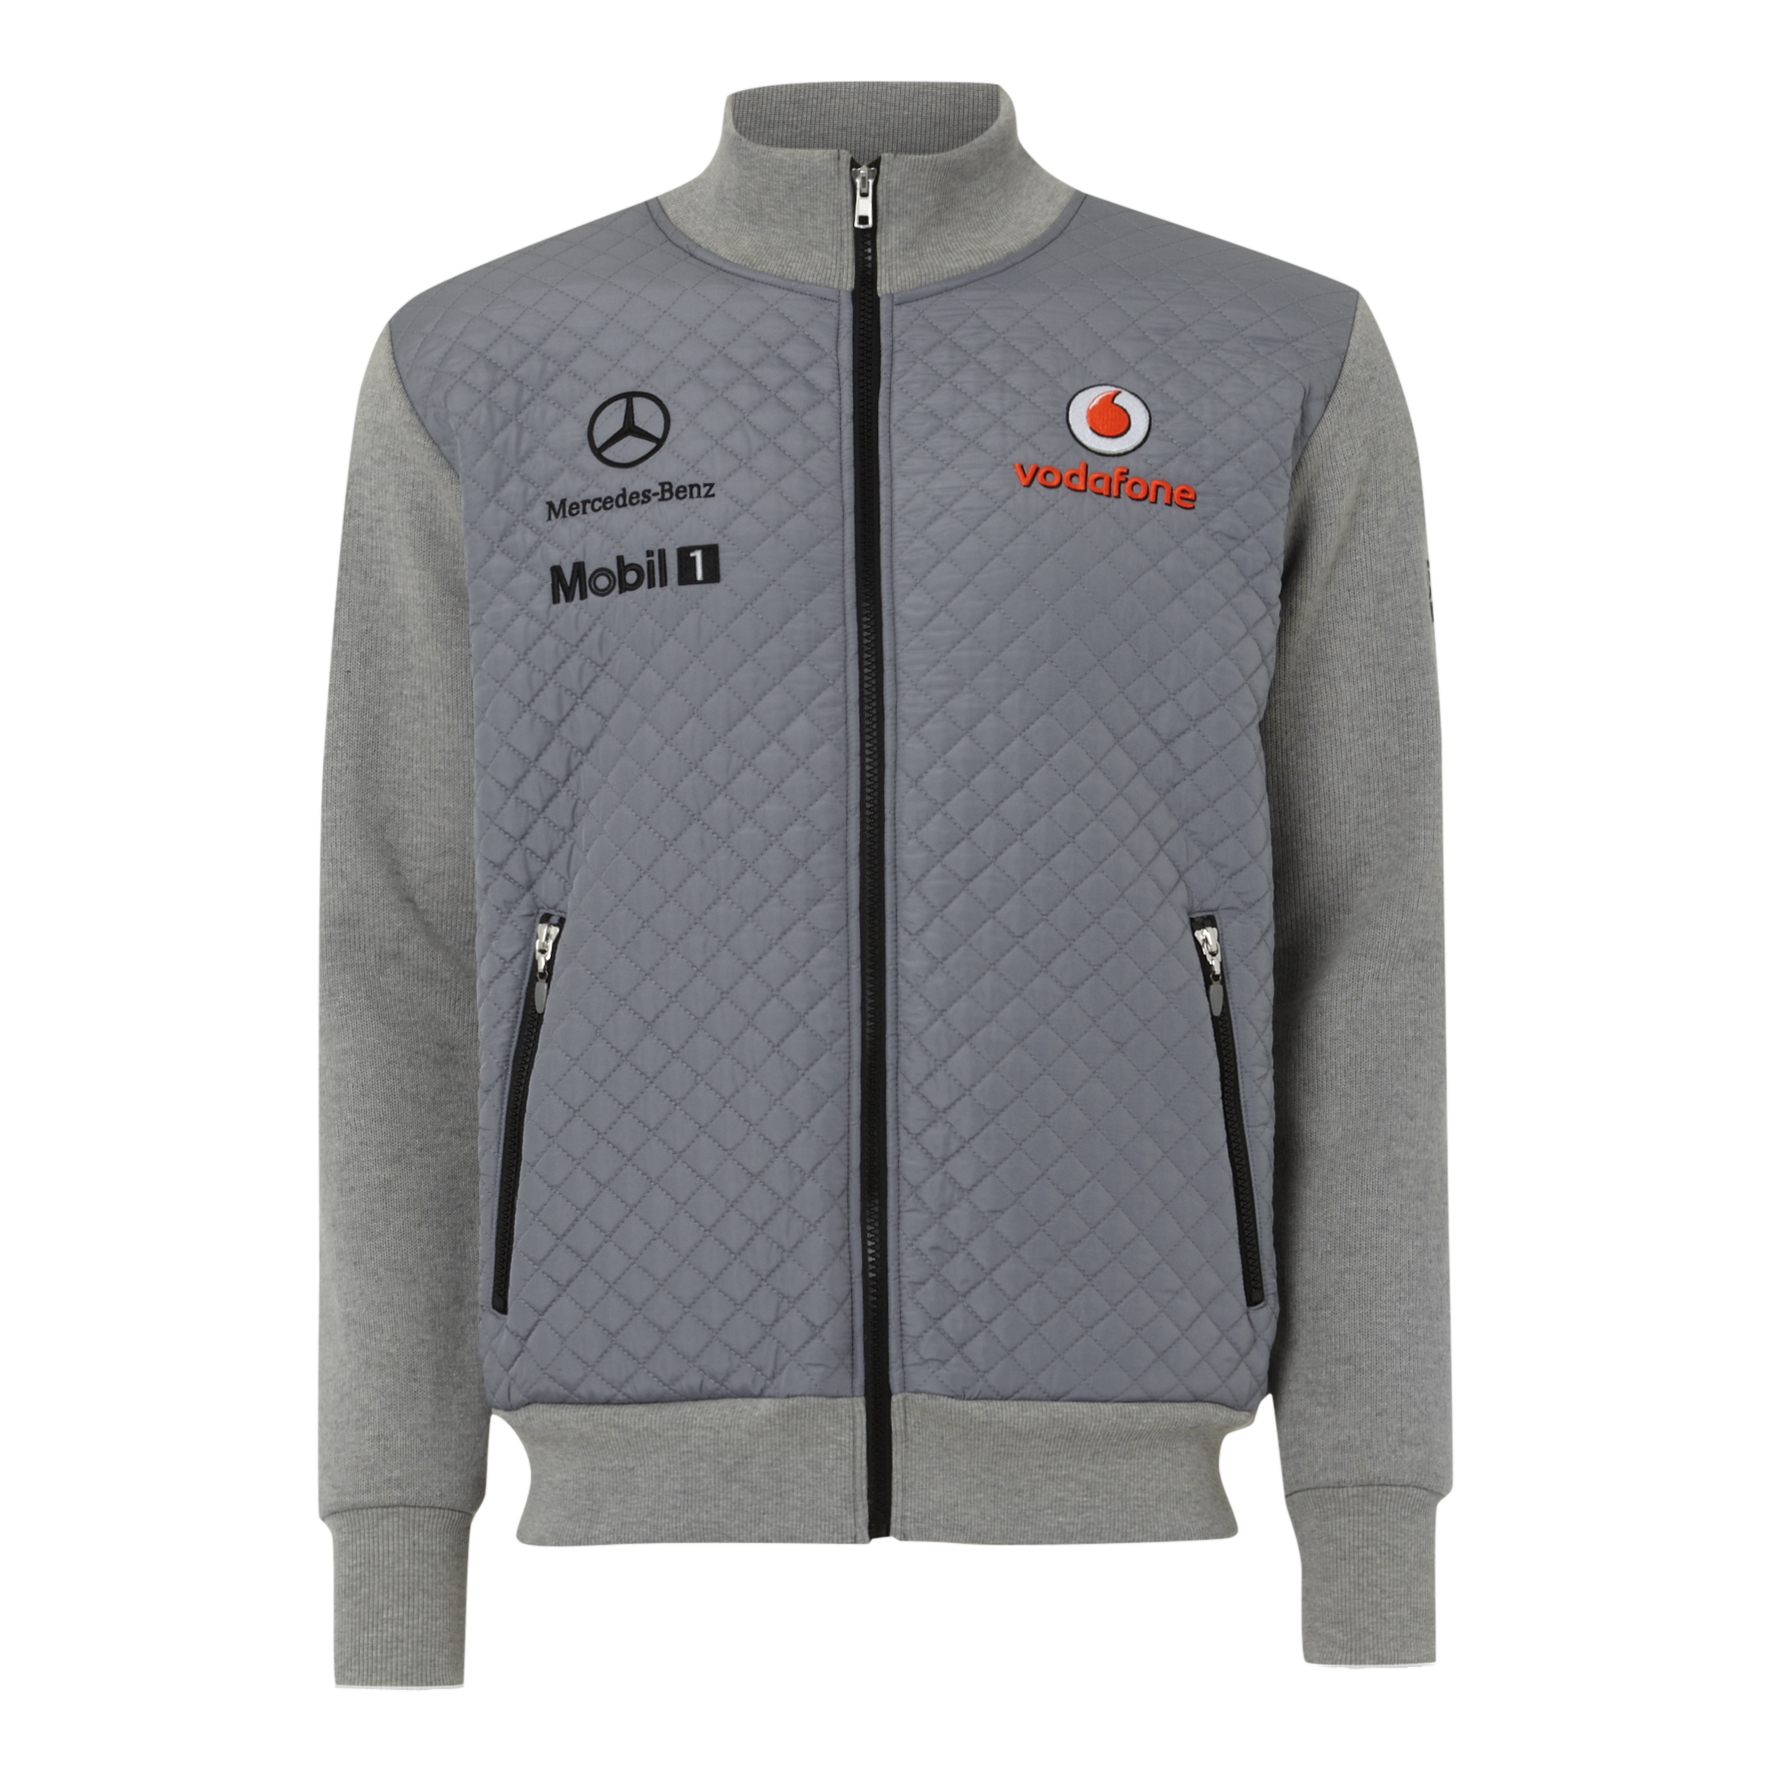 Vodafone McLaren Mercedes 2013 Team Sweatshirt